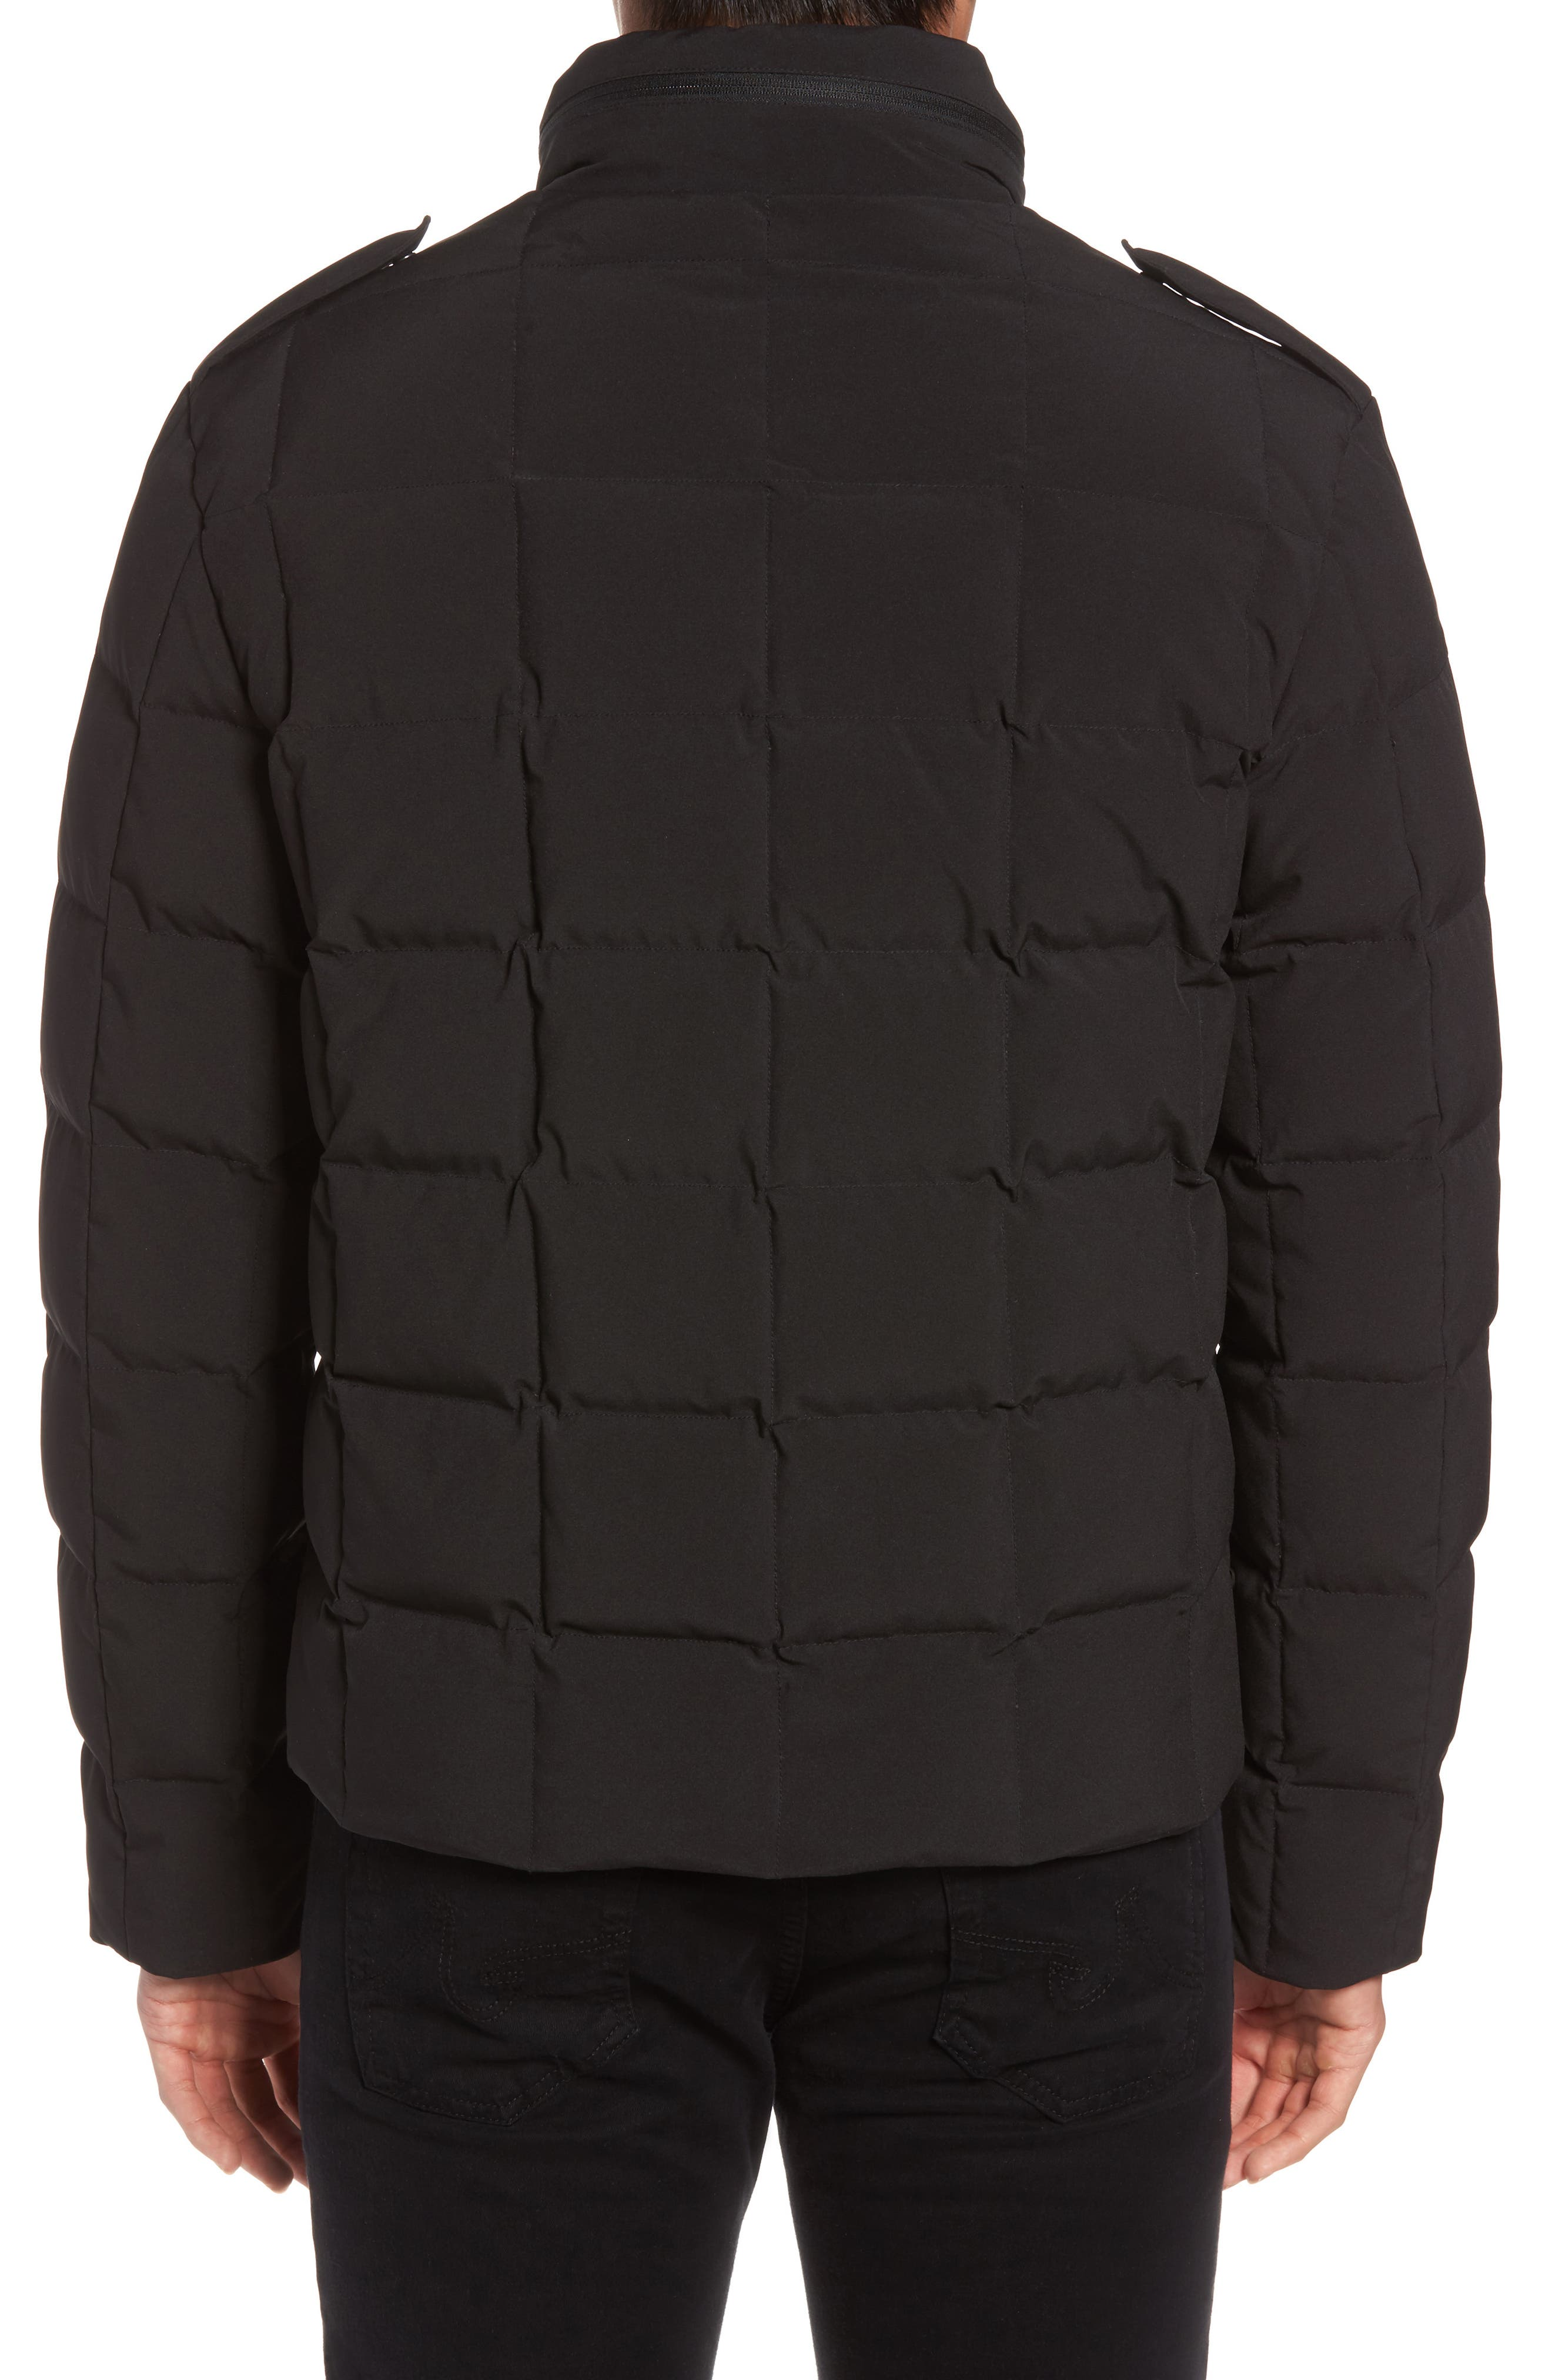 Box Quilted Jacket,                             Alternate thumbnail 2, color,                             001